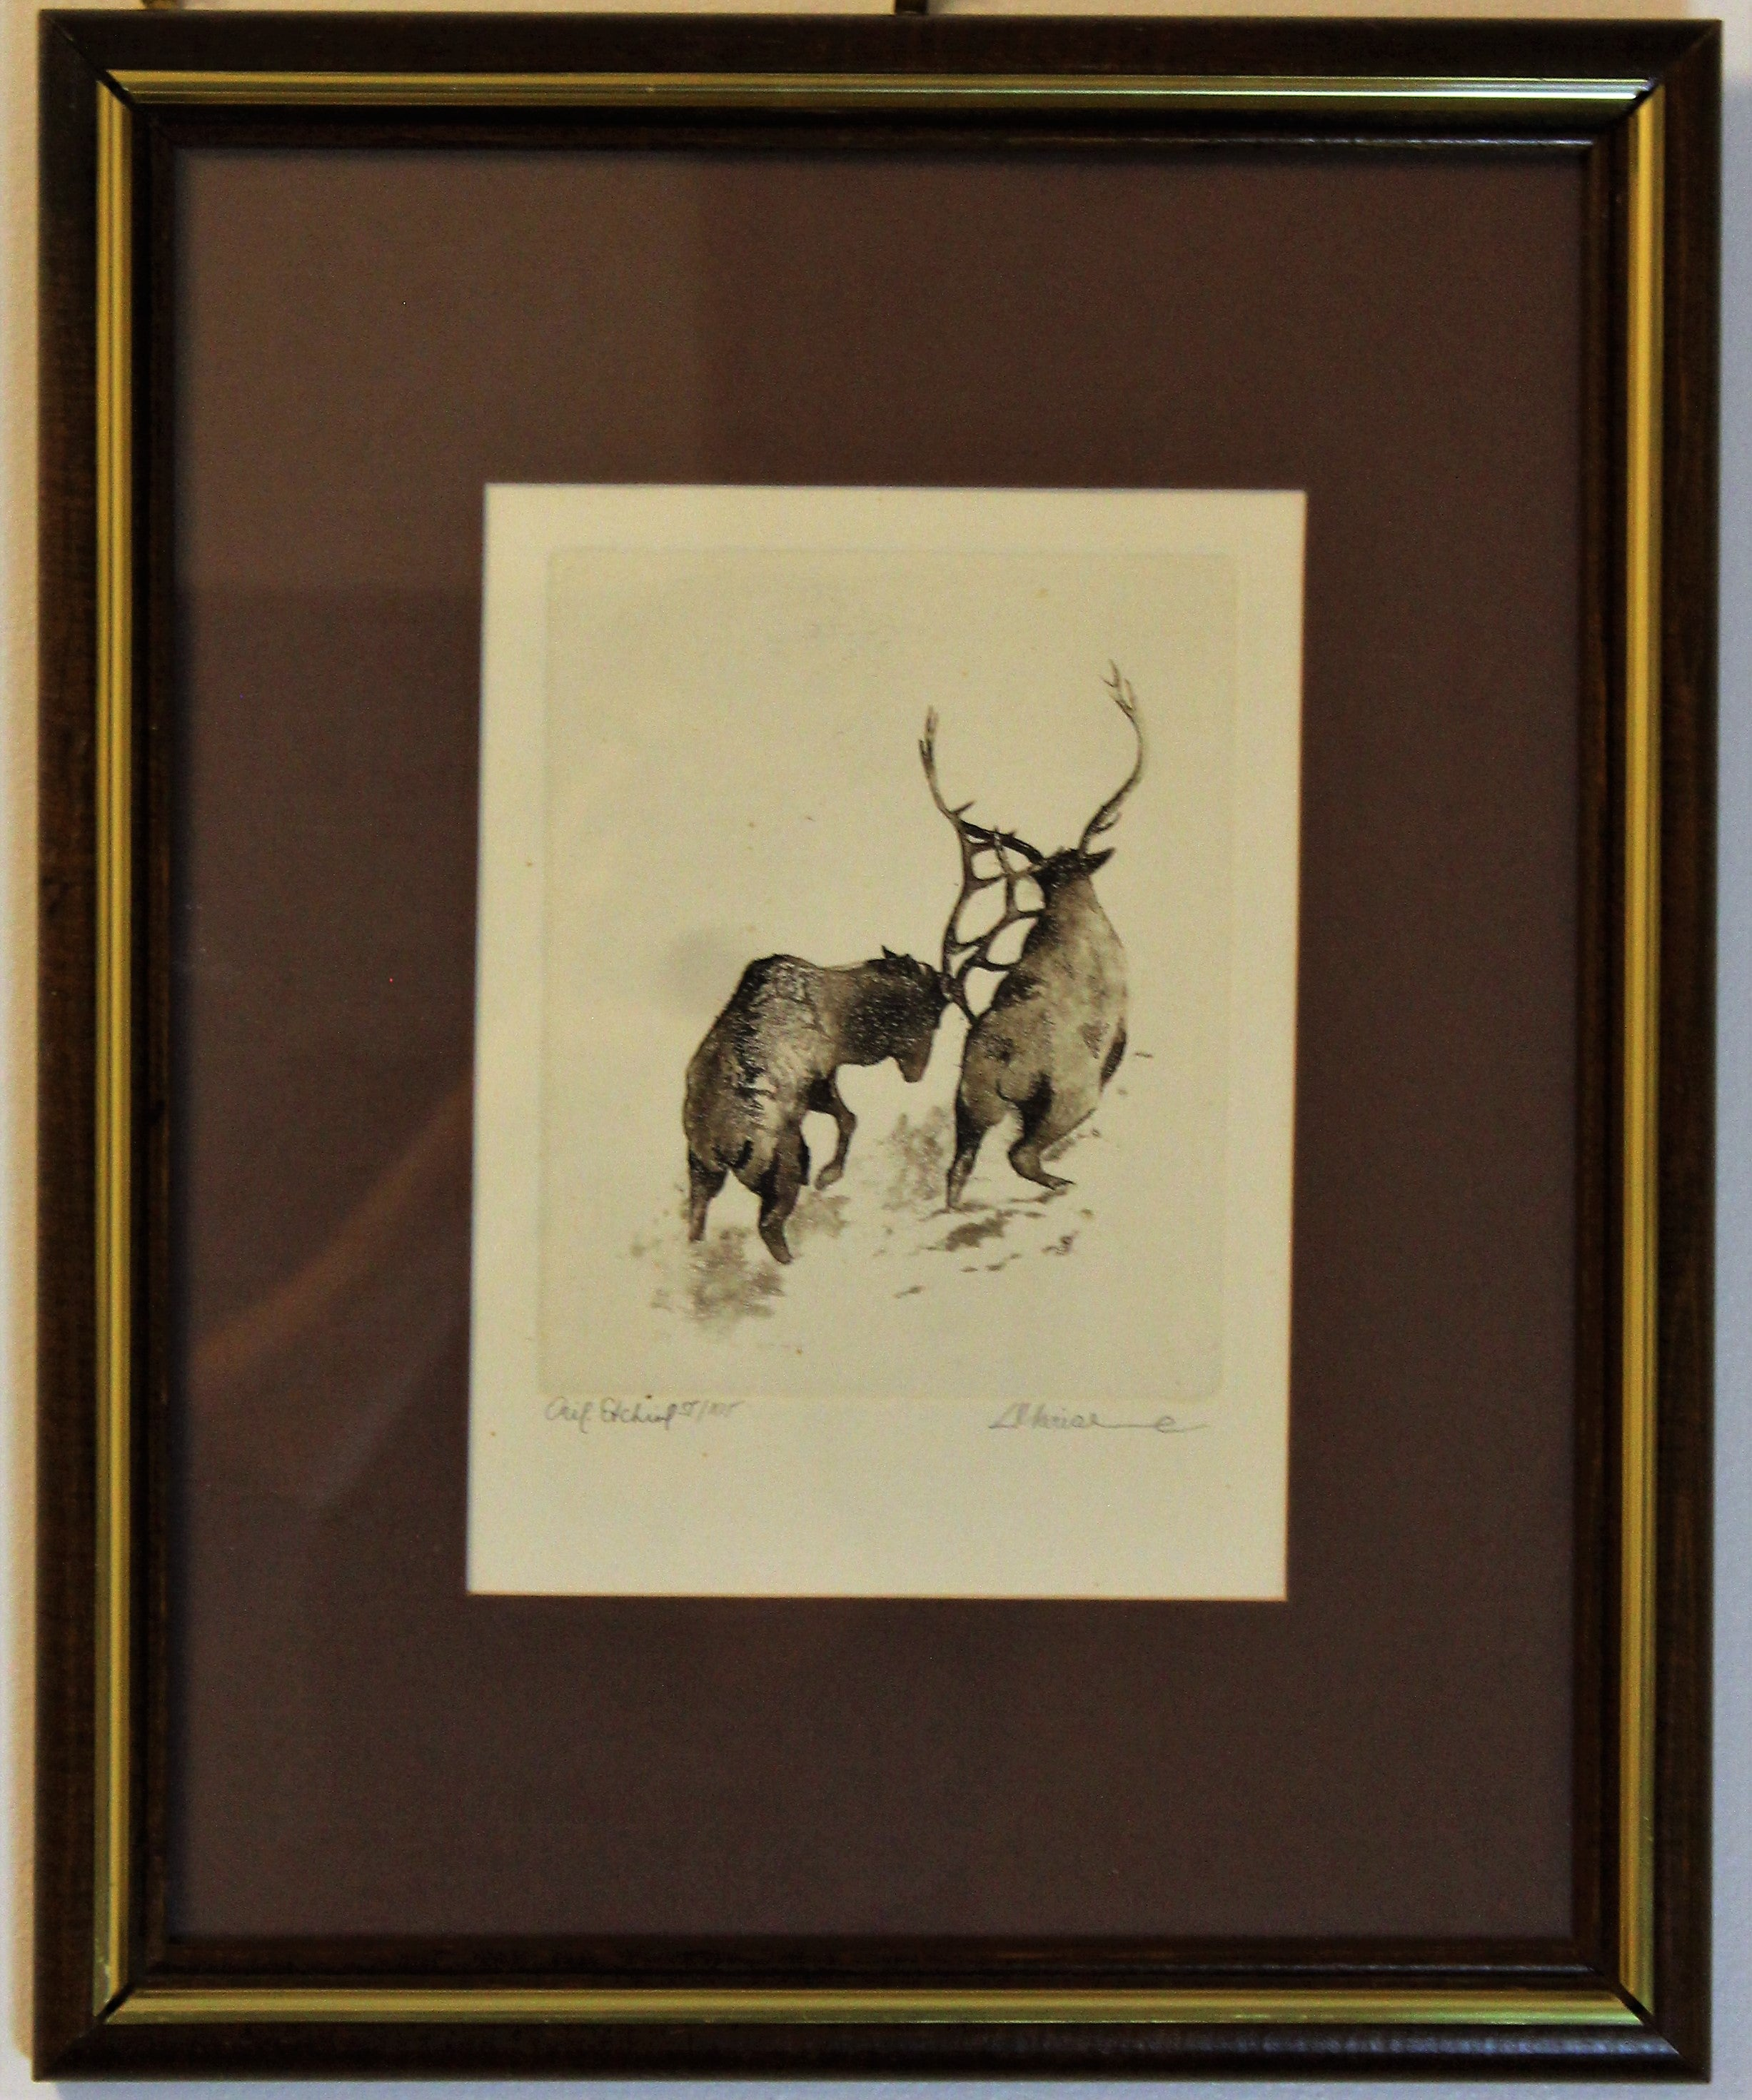 Limited Edition Etching of Elks